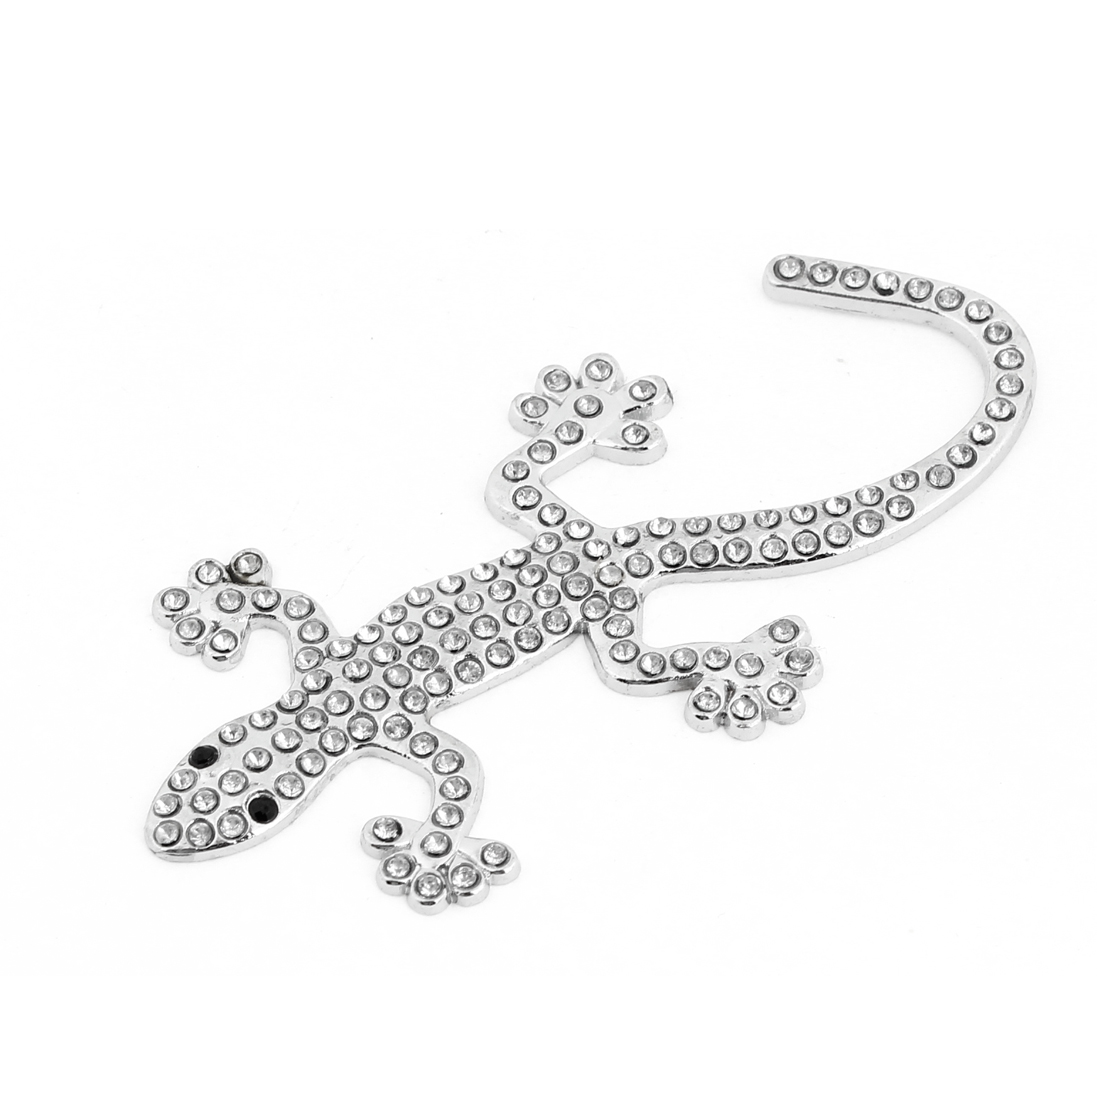 Silver Tone Faux Rhinestone Adorn Metal Gecko Design Sticker for Car